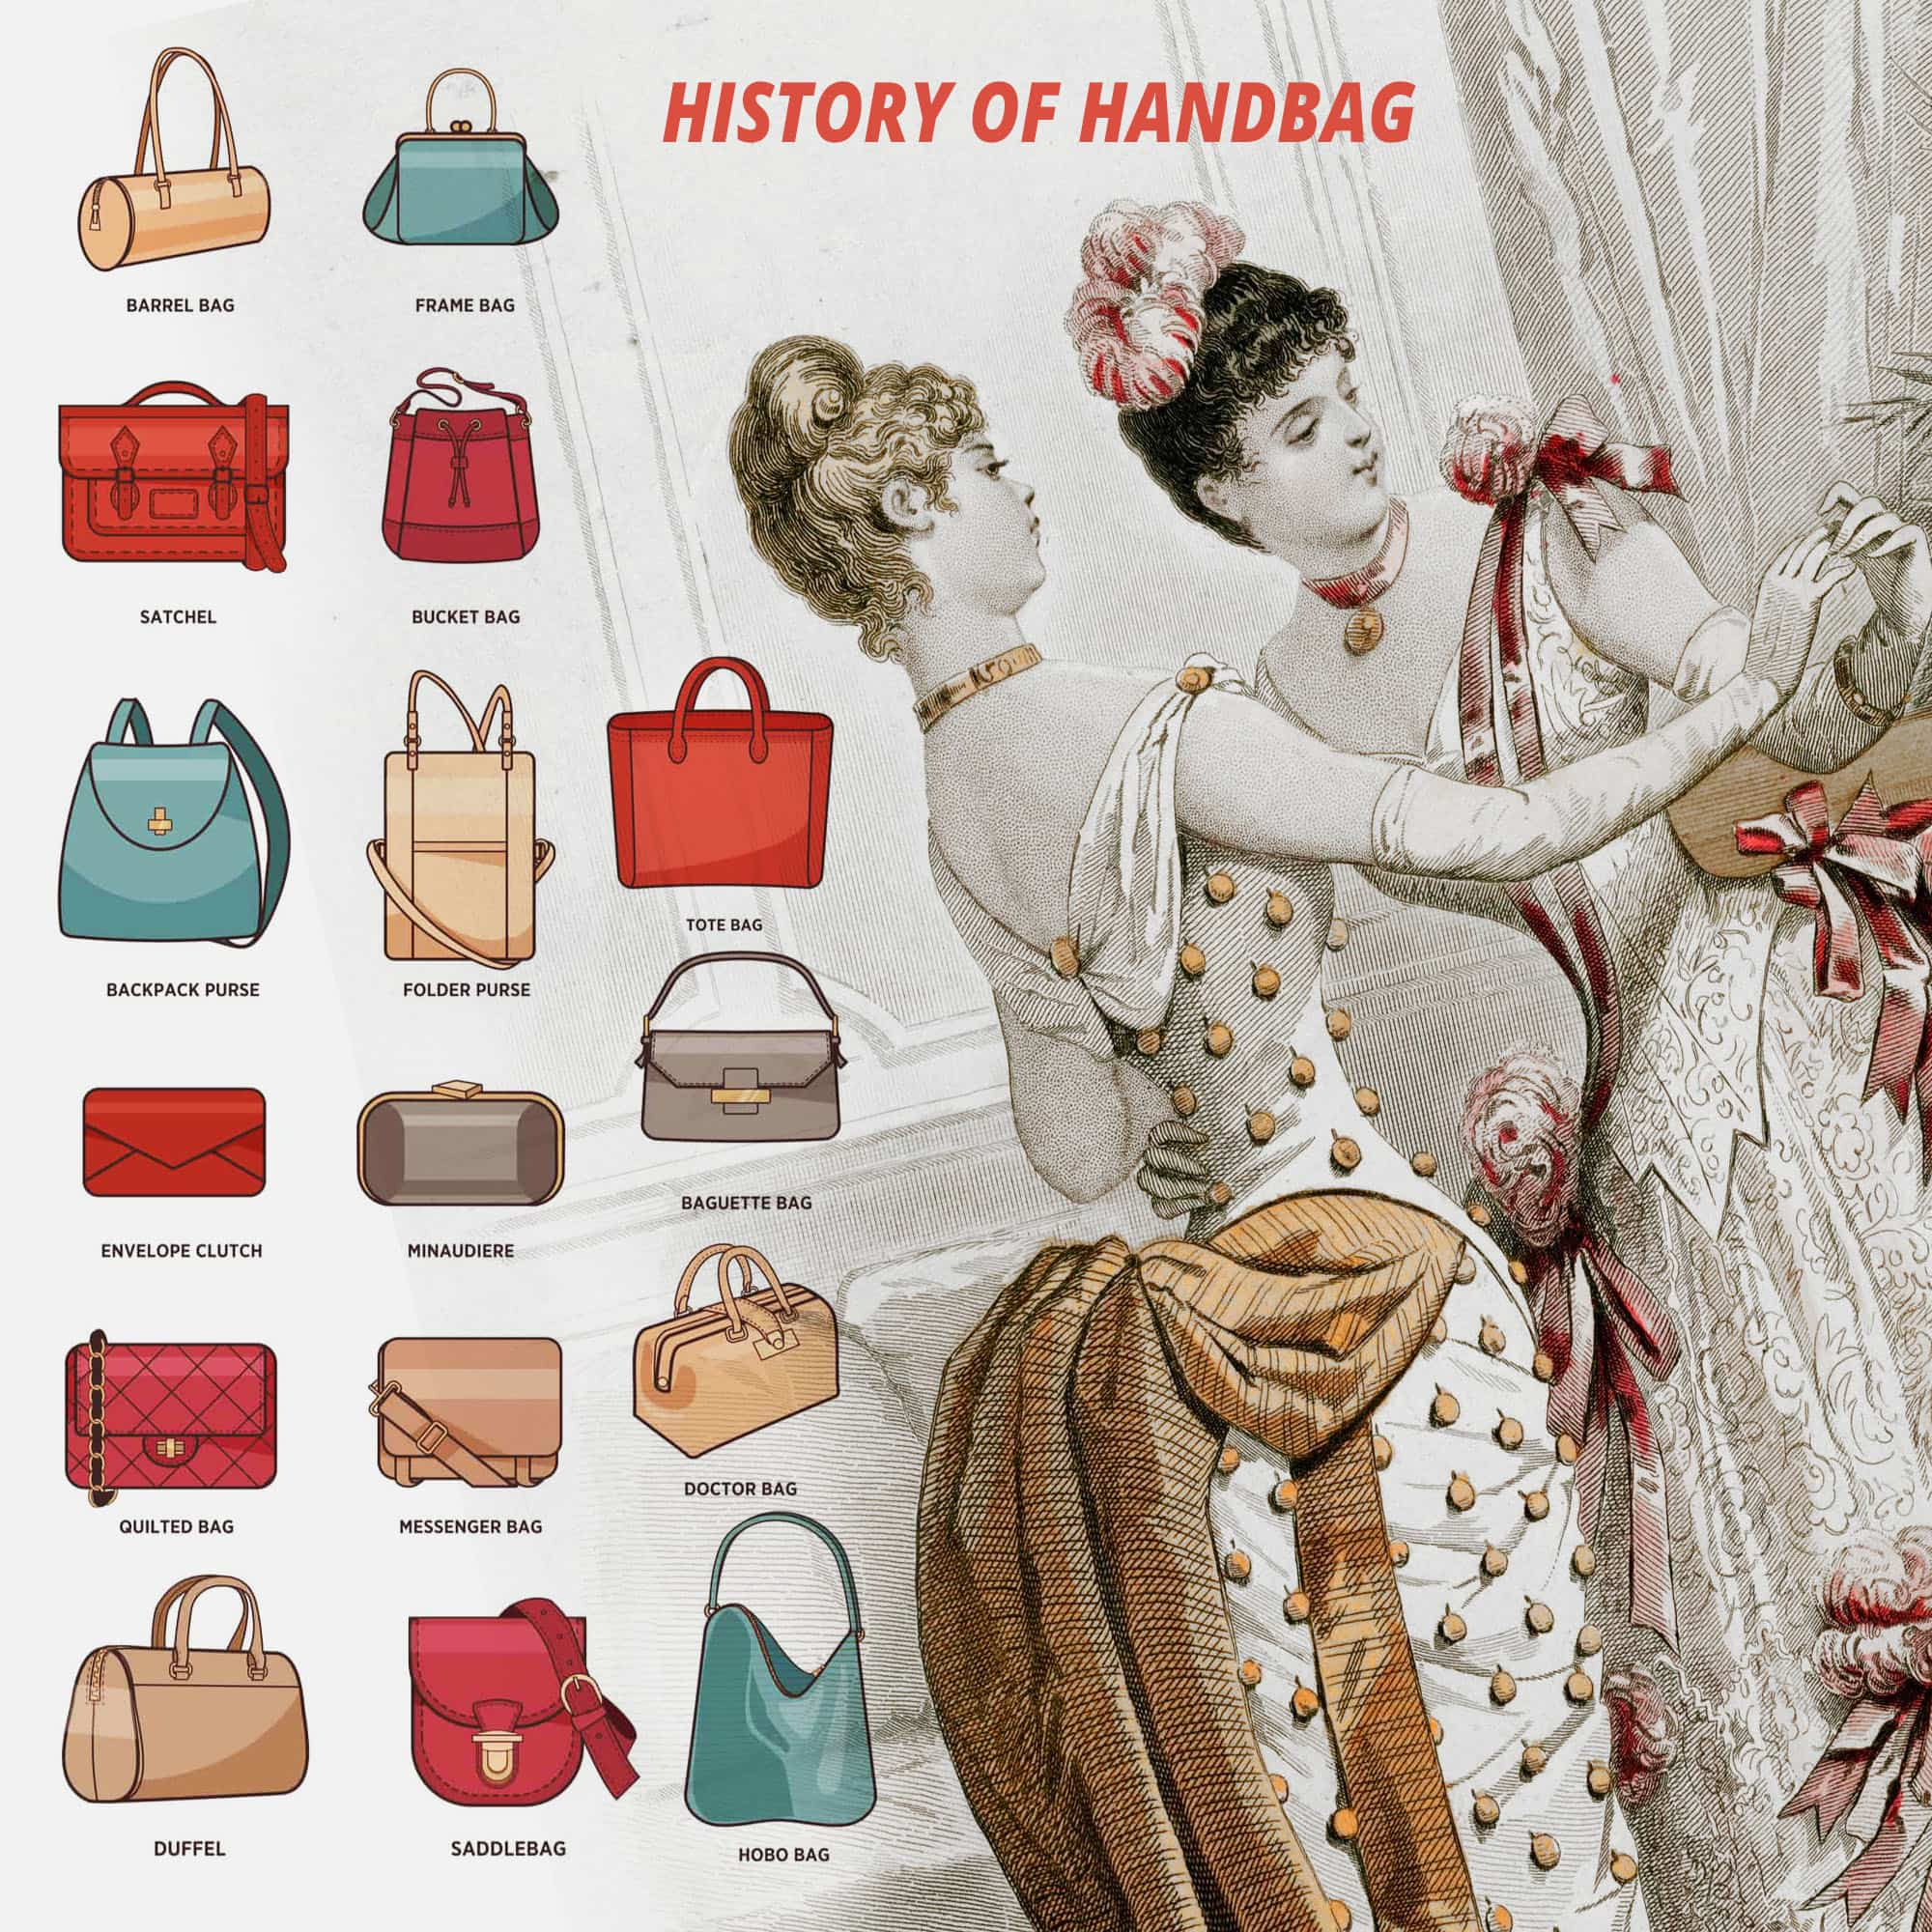 History of handbag - INPI treasures by RUNWAY MAGAZINE